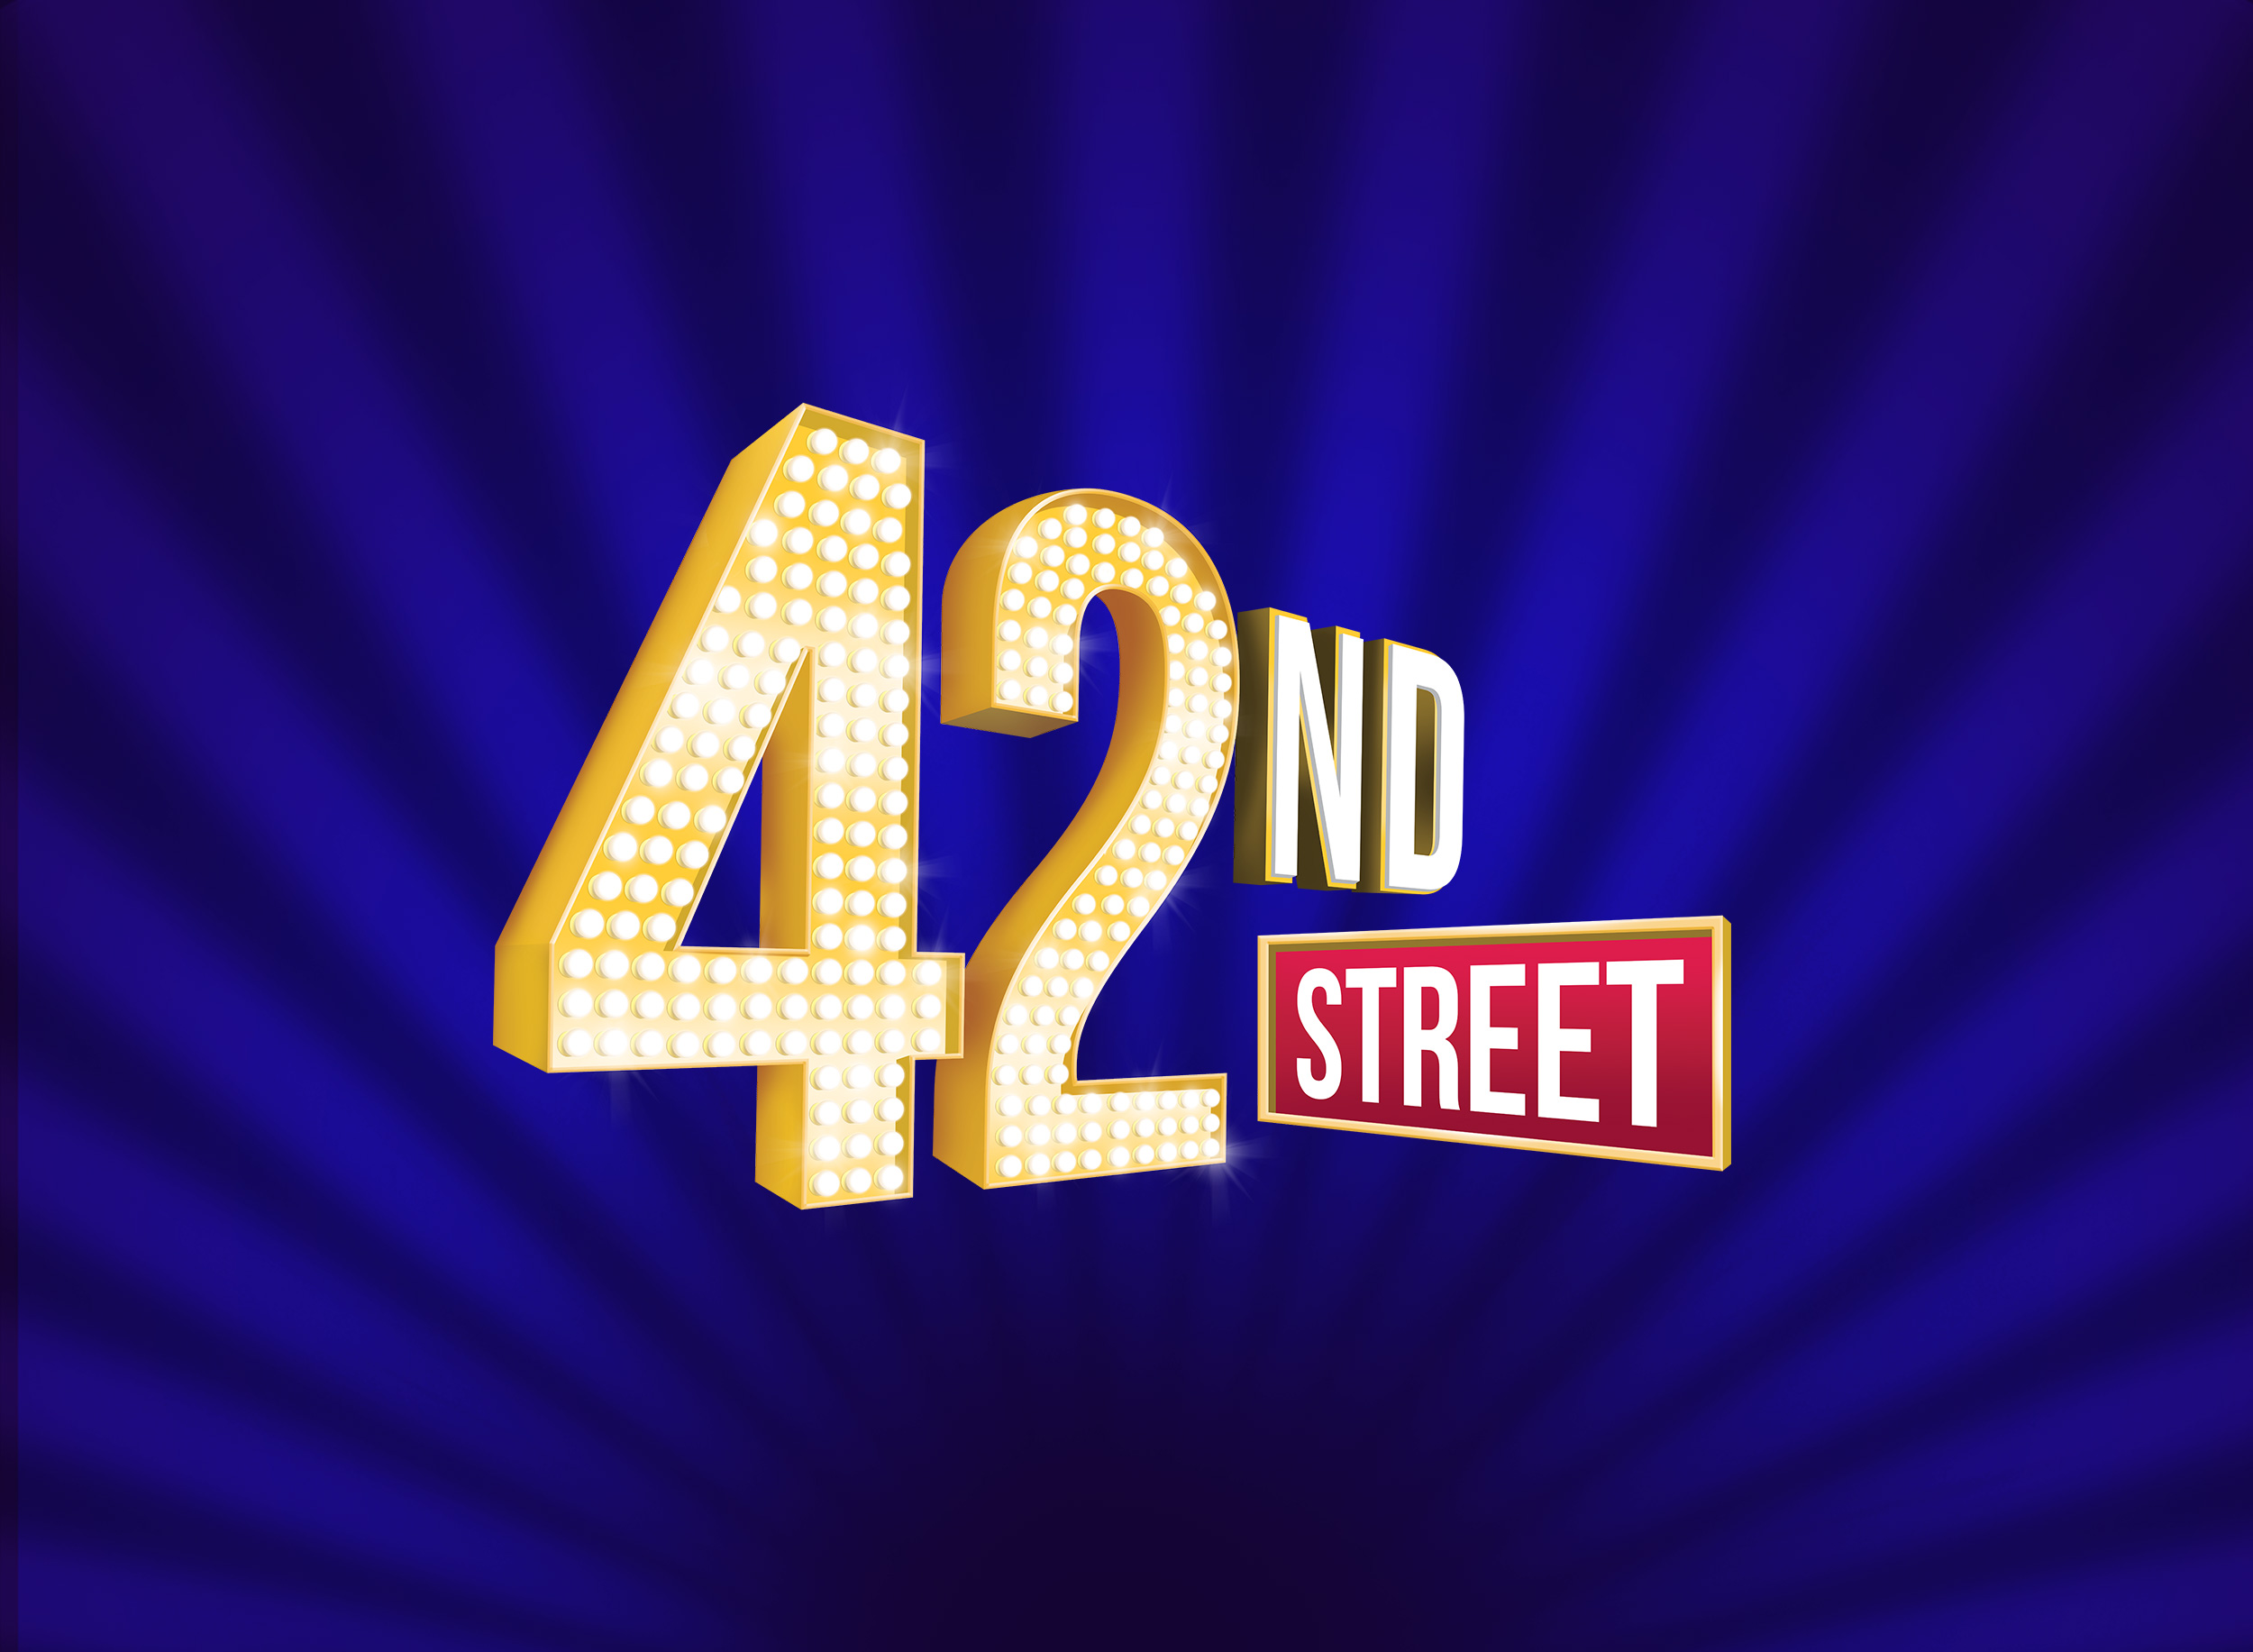 42nd Street - Cast and Creative — OGUNQUIT PLAYHOUSE on map of southbridge, map of minetto, map of delmar, map of cornwall, map of preston hollow, map of pekin, map of queensbury, map of new york harbor, map of new london, map of depew, map of medusa, map of crossgates mall, map of broadalbin, map of waldport, map of rio grande city, map of little falls, map of dormansville, map of edmeston, map of saco, map of colonial heights,